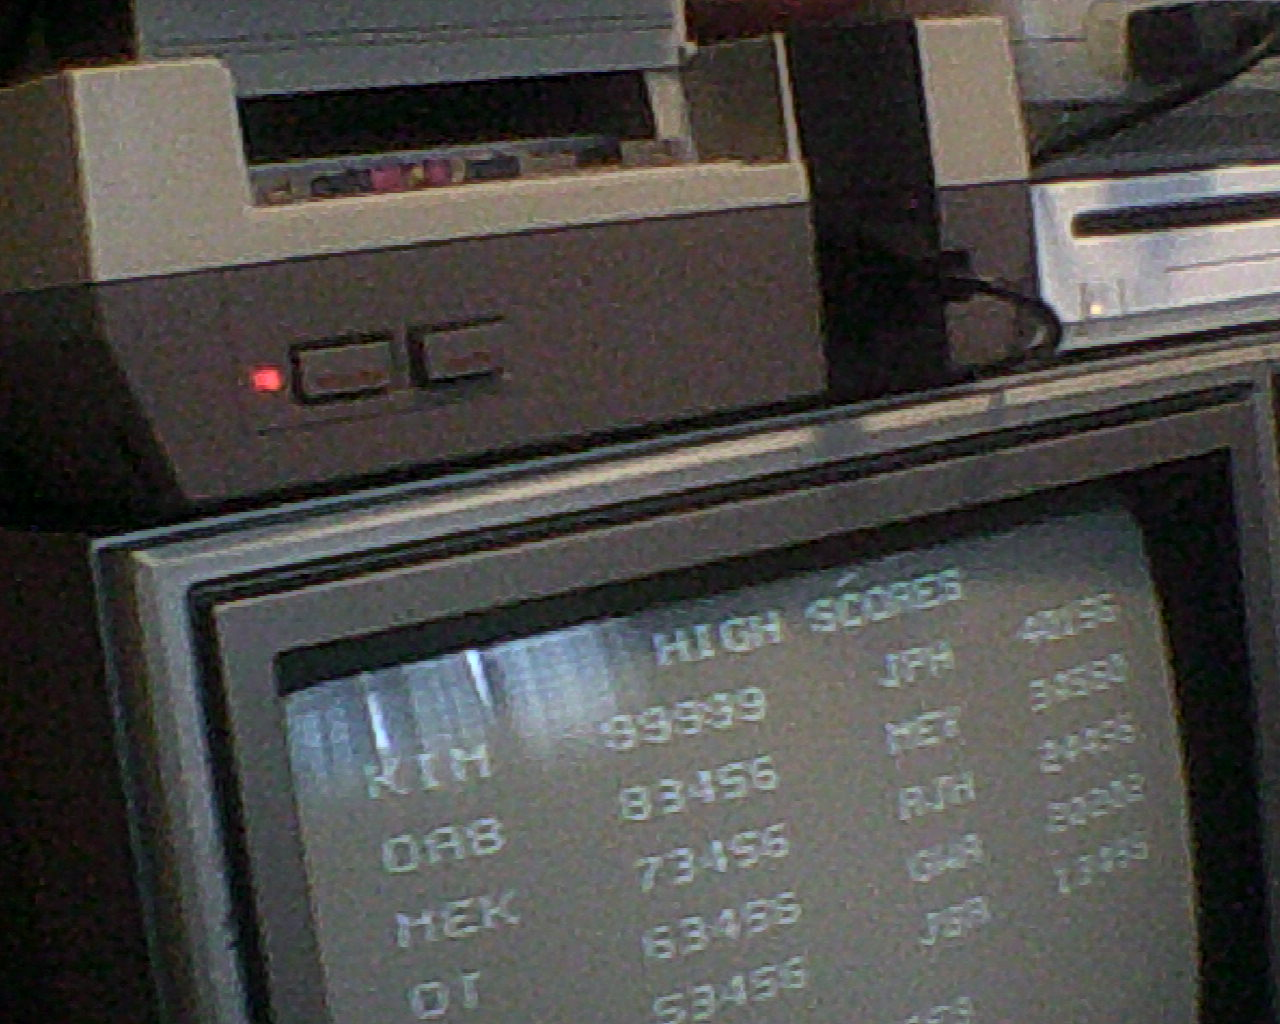 DuckGWR: Skate or Die 2: Ramp (NES/Famicom) 20,202 points on 2015-01-16 13:24:25